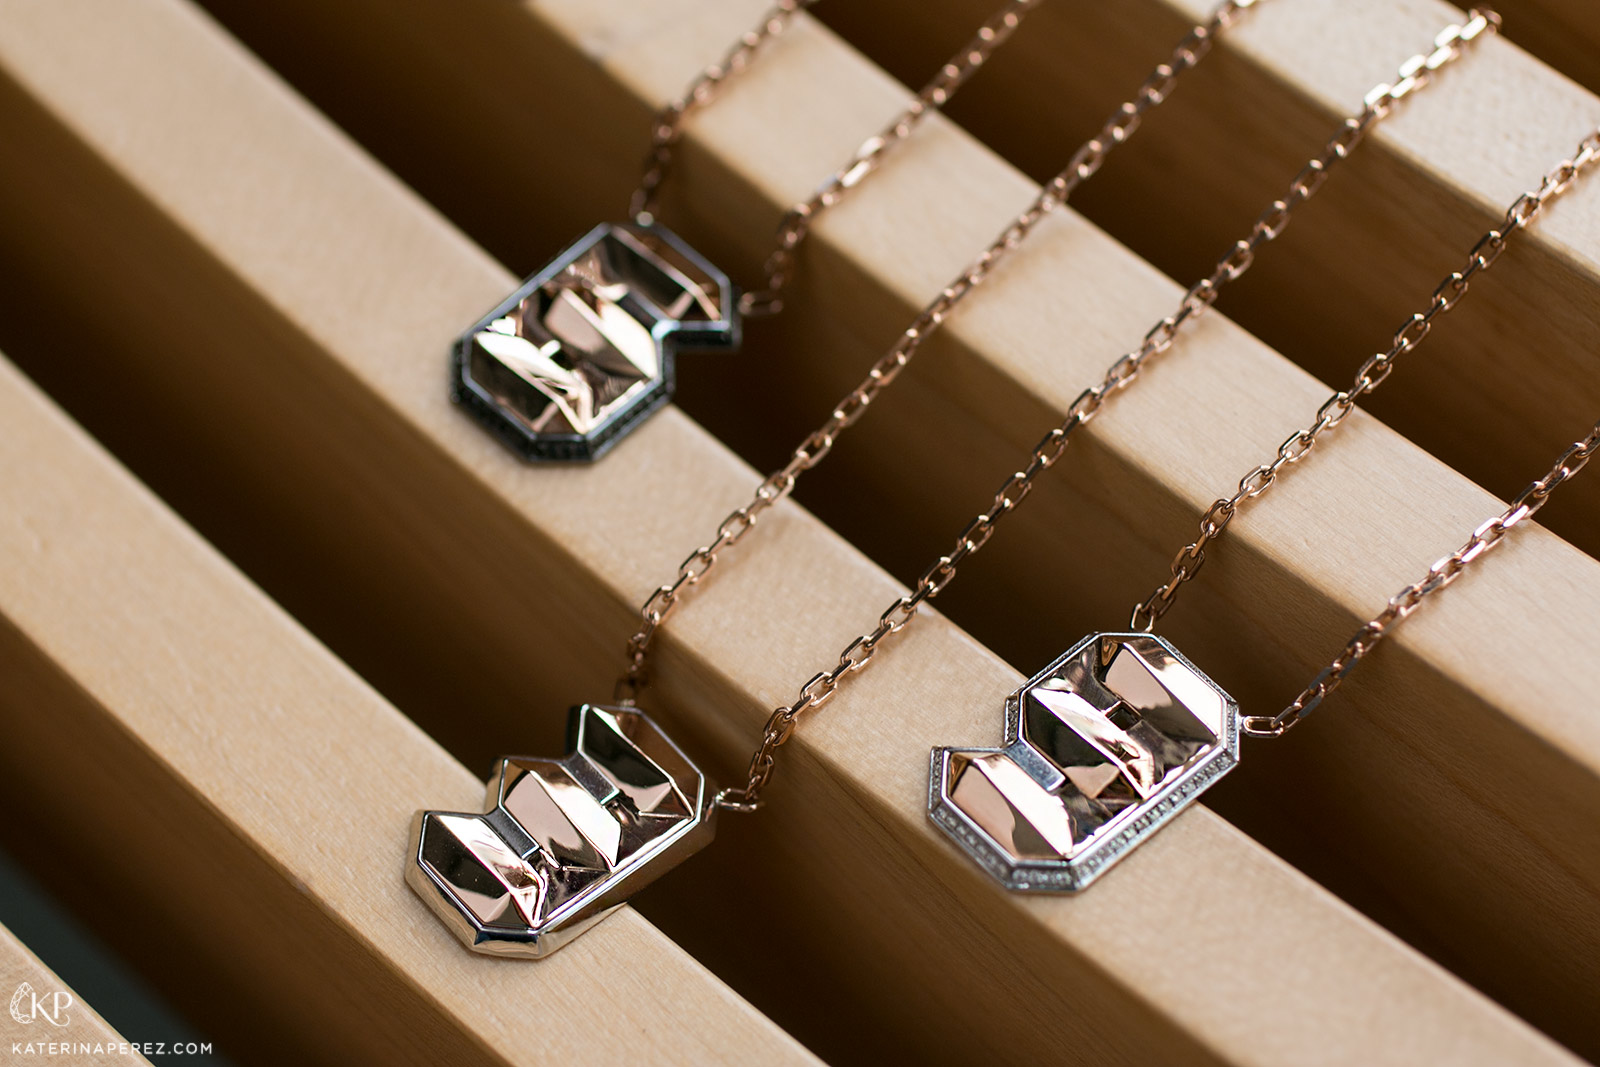 VMAR pendants with colourless and black diamonds in titanium and 18k gold